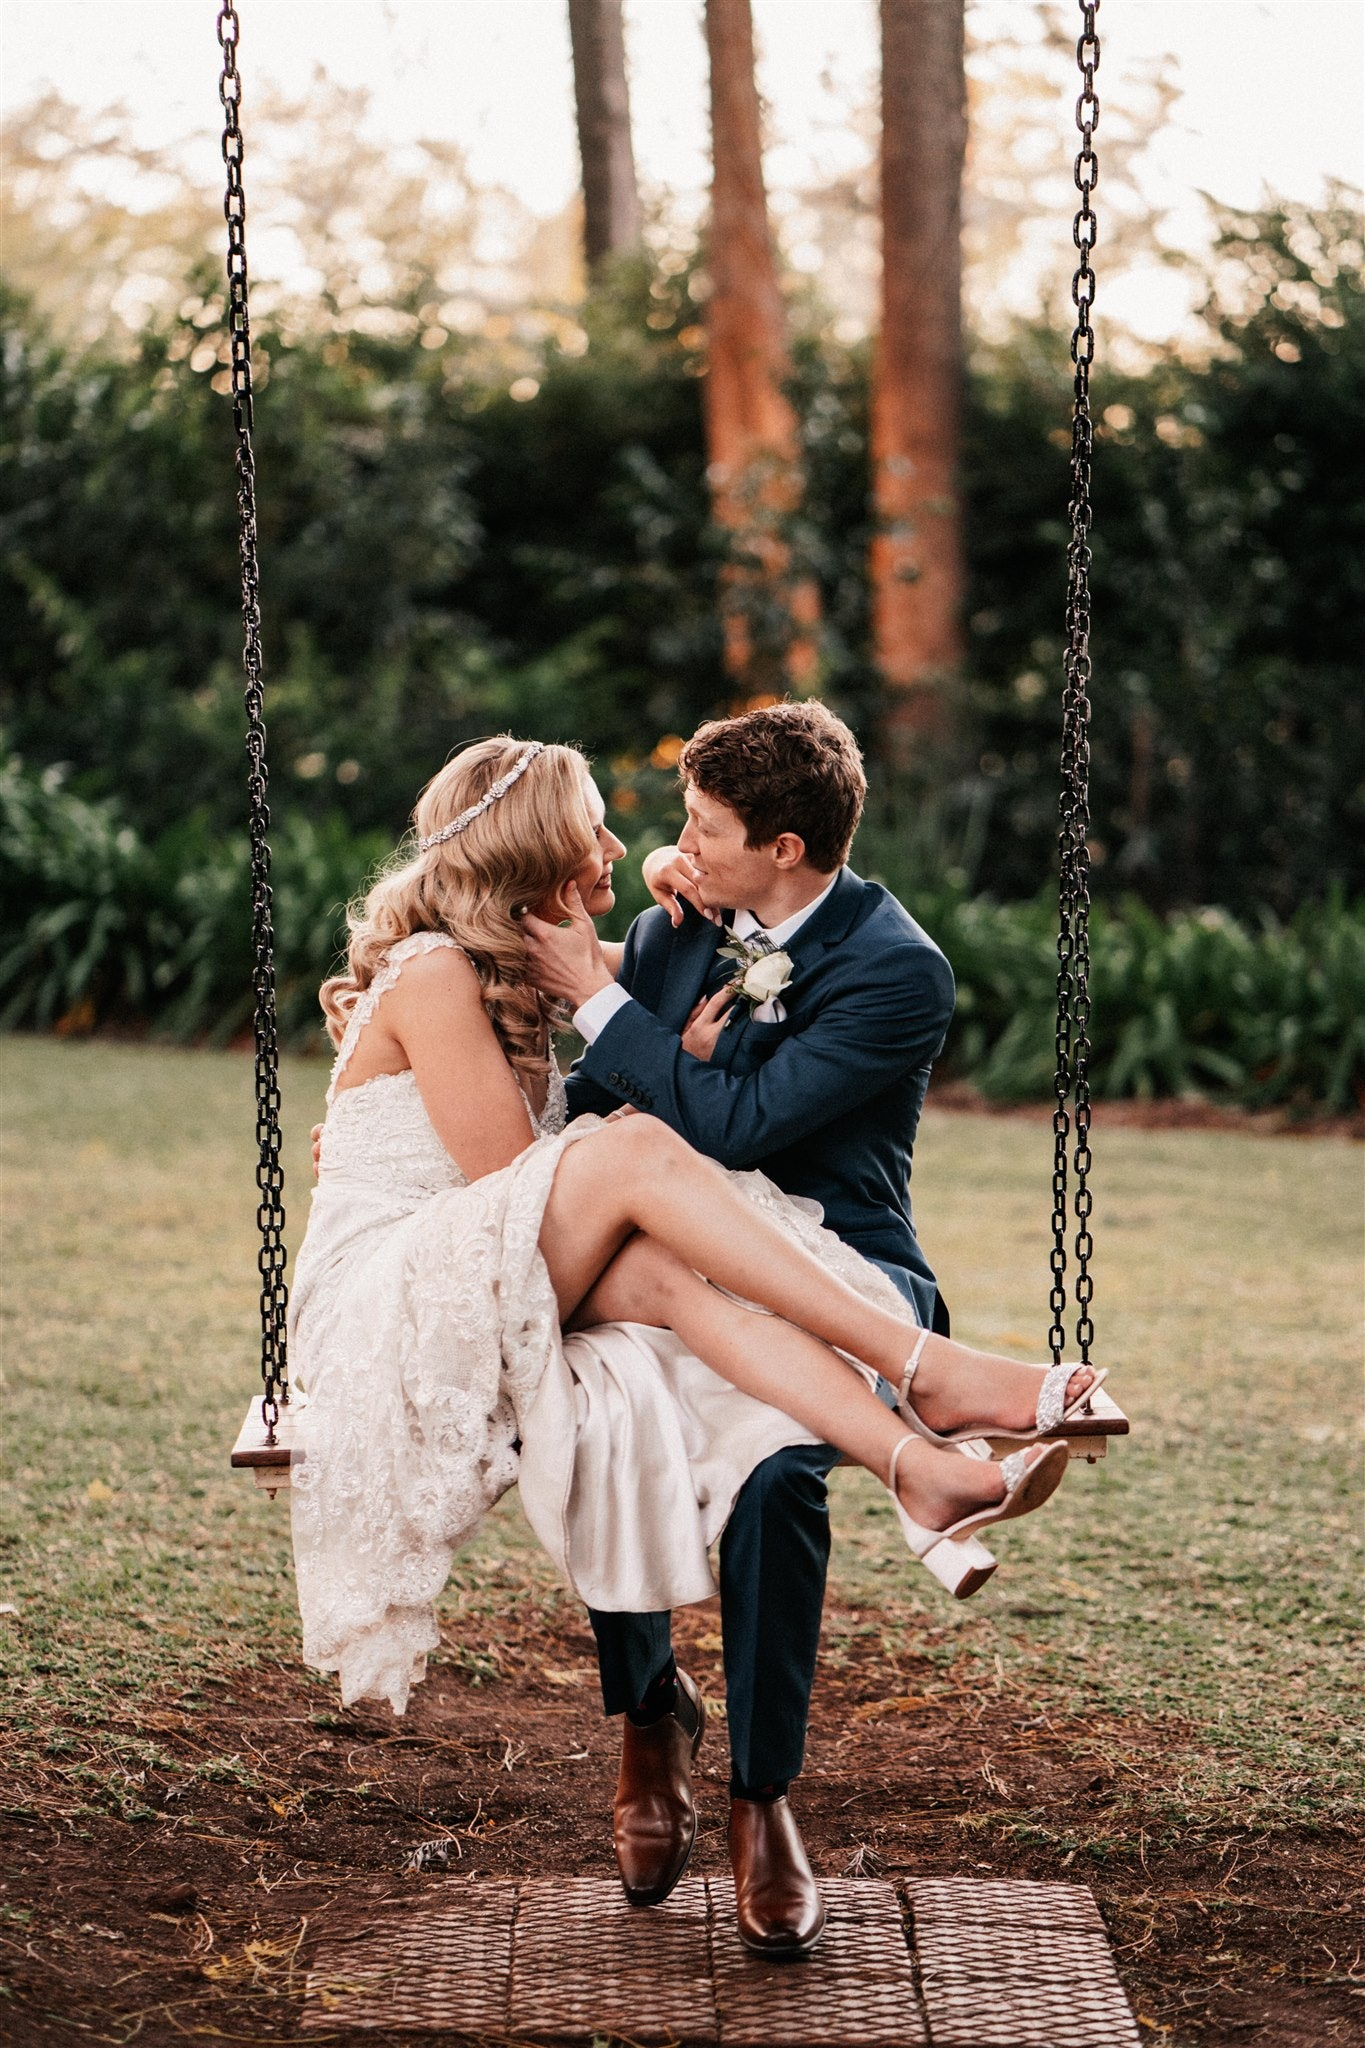 Bride and groom sitting on swing